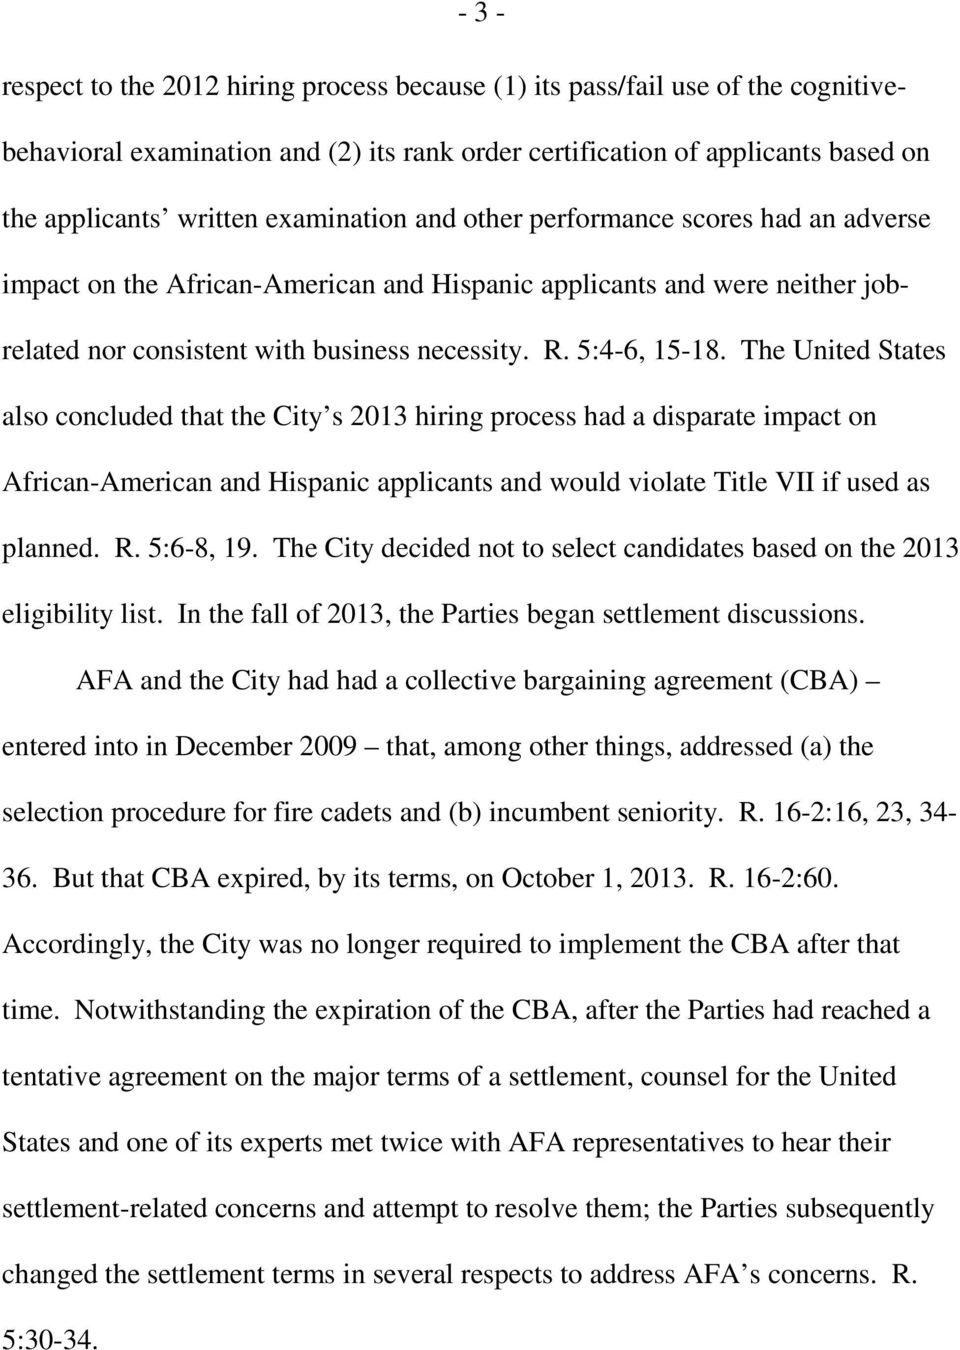 The United States also concluded that the City s 2013 hiring process had a disparate impact on African-American and Hispanic applicants and would violate Title VII if used as planned. R. 5:6-8, 19.